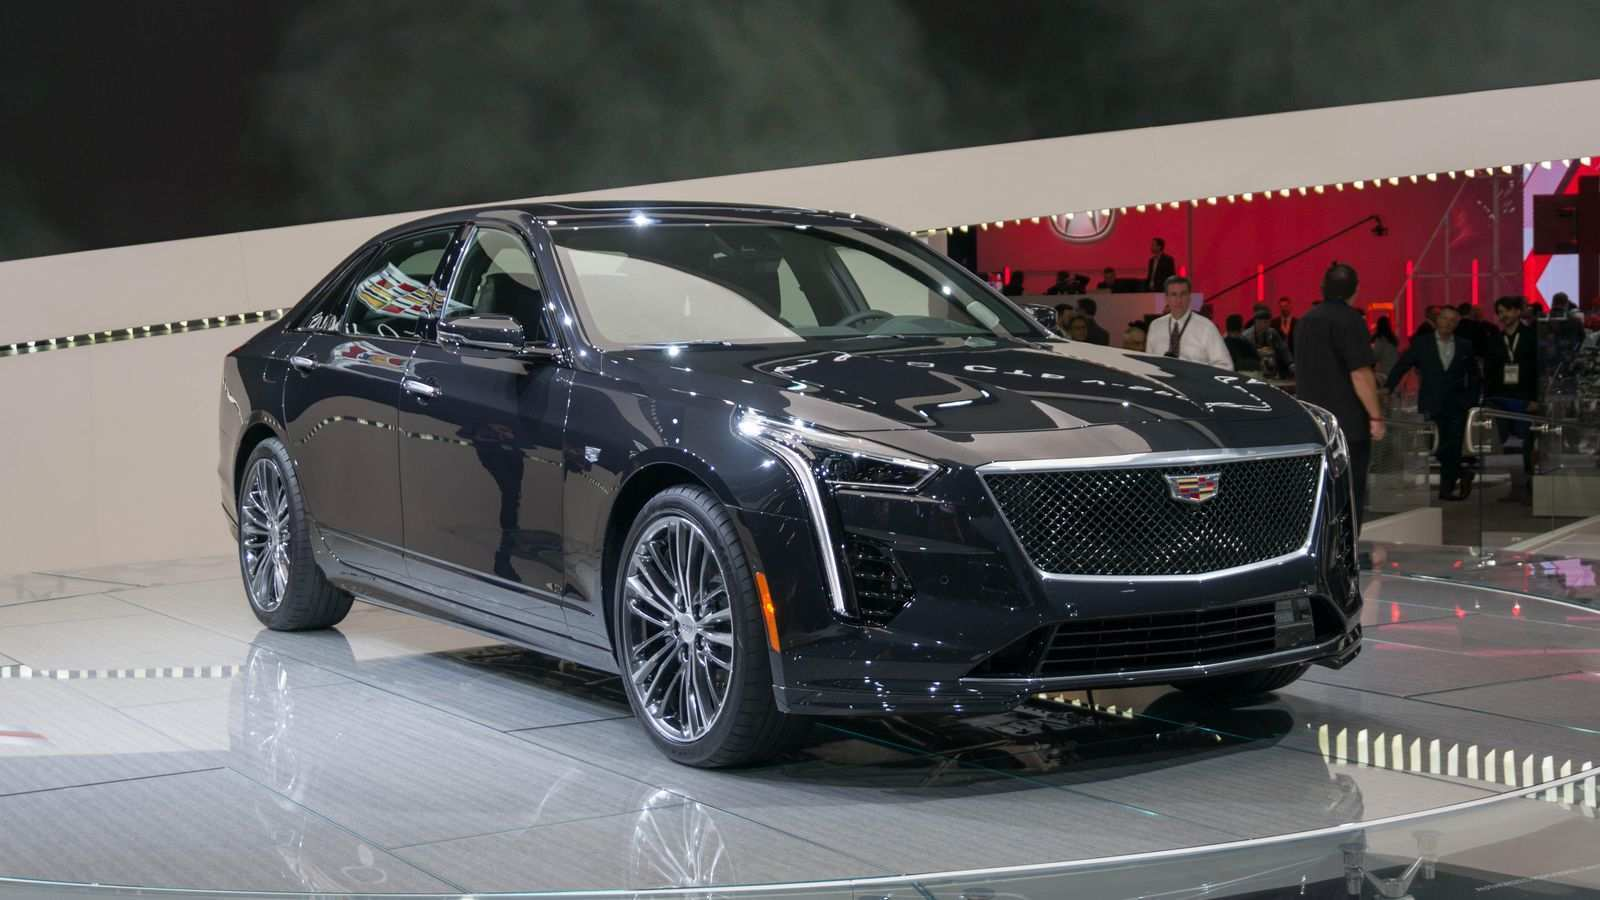 68 New 2019 Cadillac Twin Turbo V8 Pictures with 2019 Cadillac Twin Turbo V8